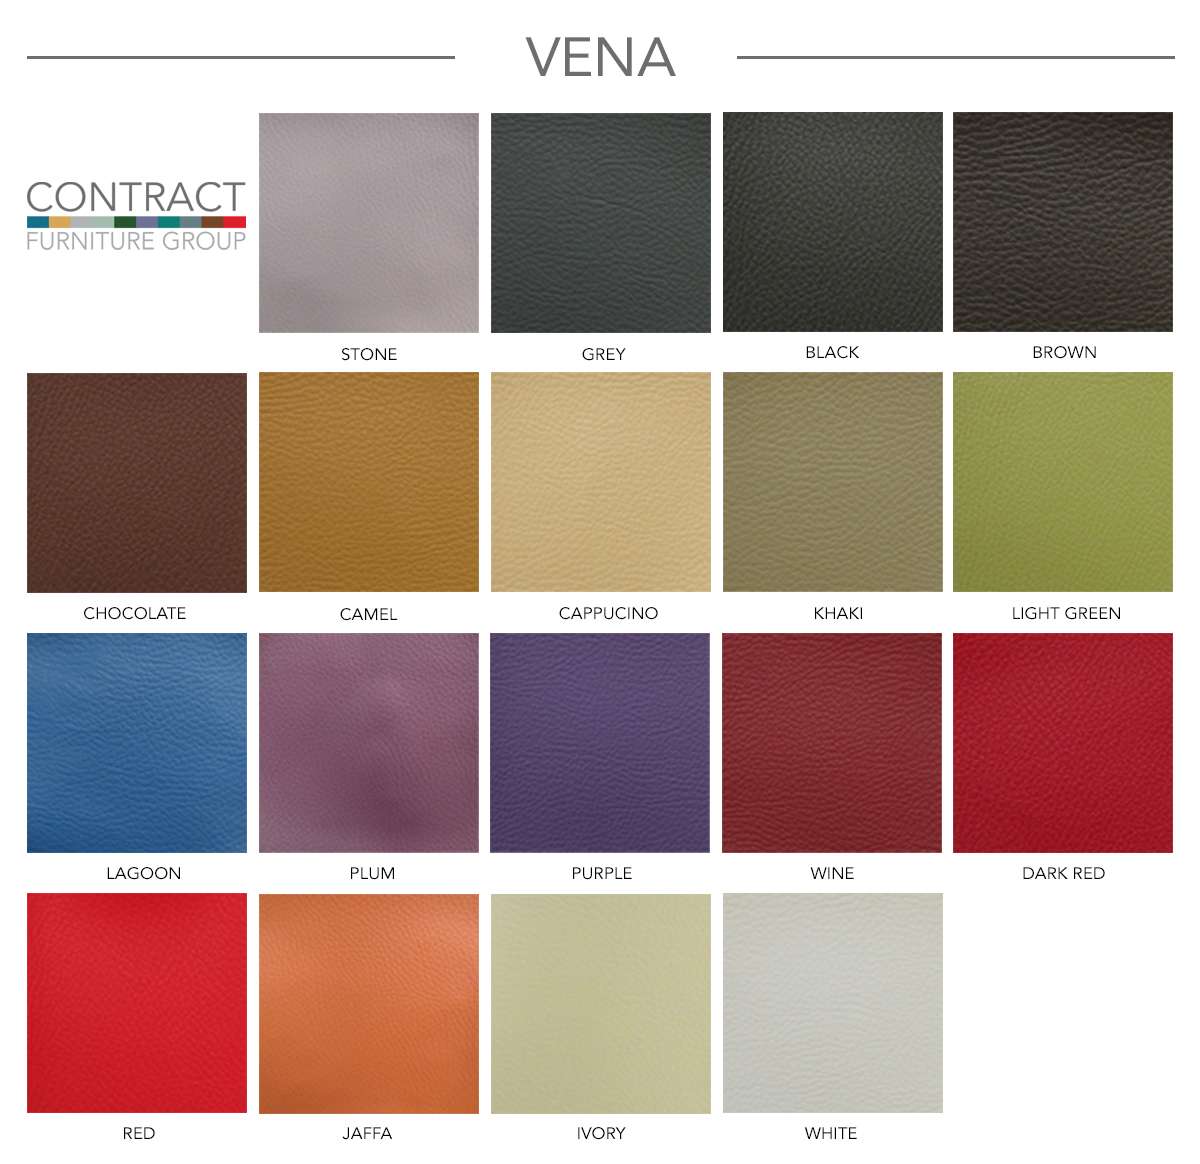 Contract Furniture Group Vena Faux Leather